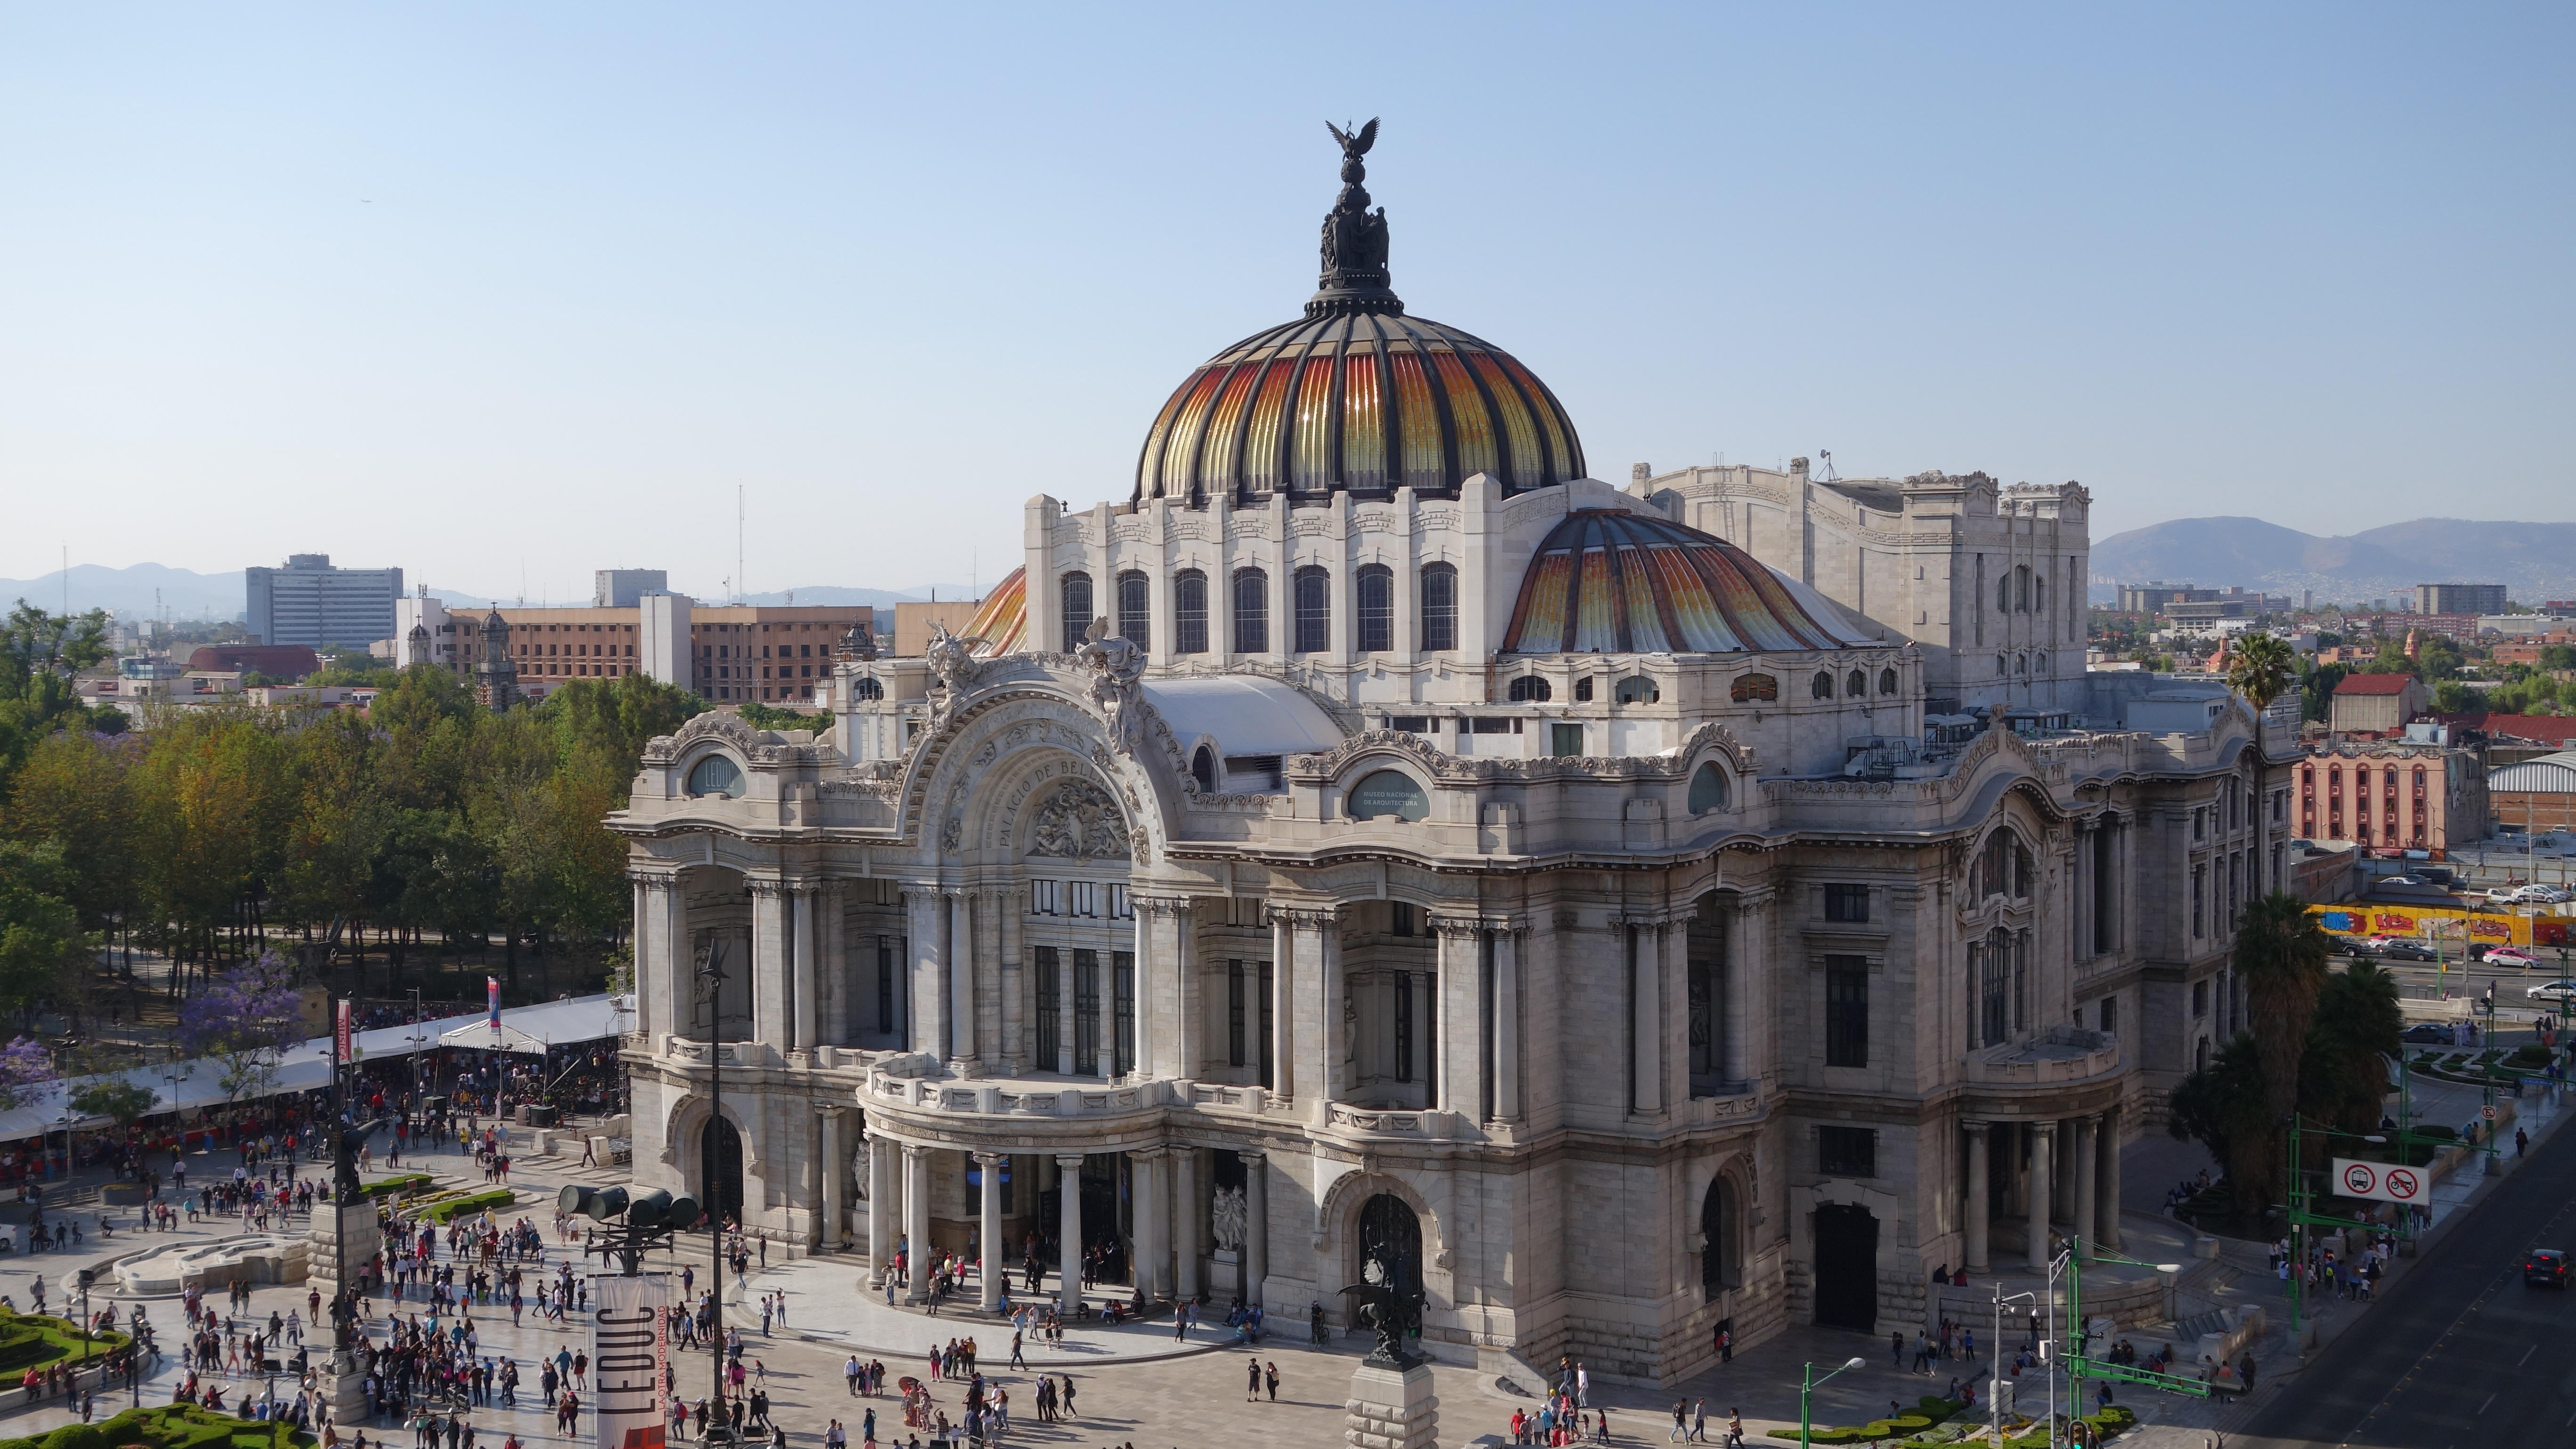 A Tour Of Mexico City In 10 Famous Buildings